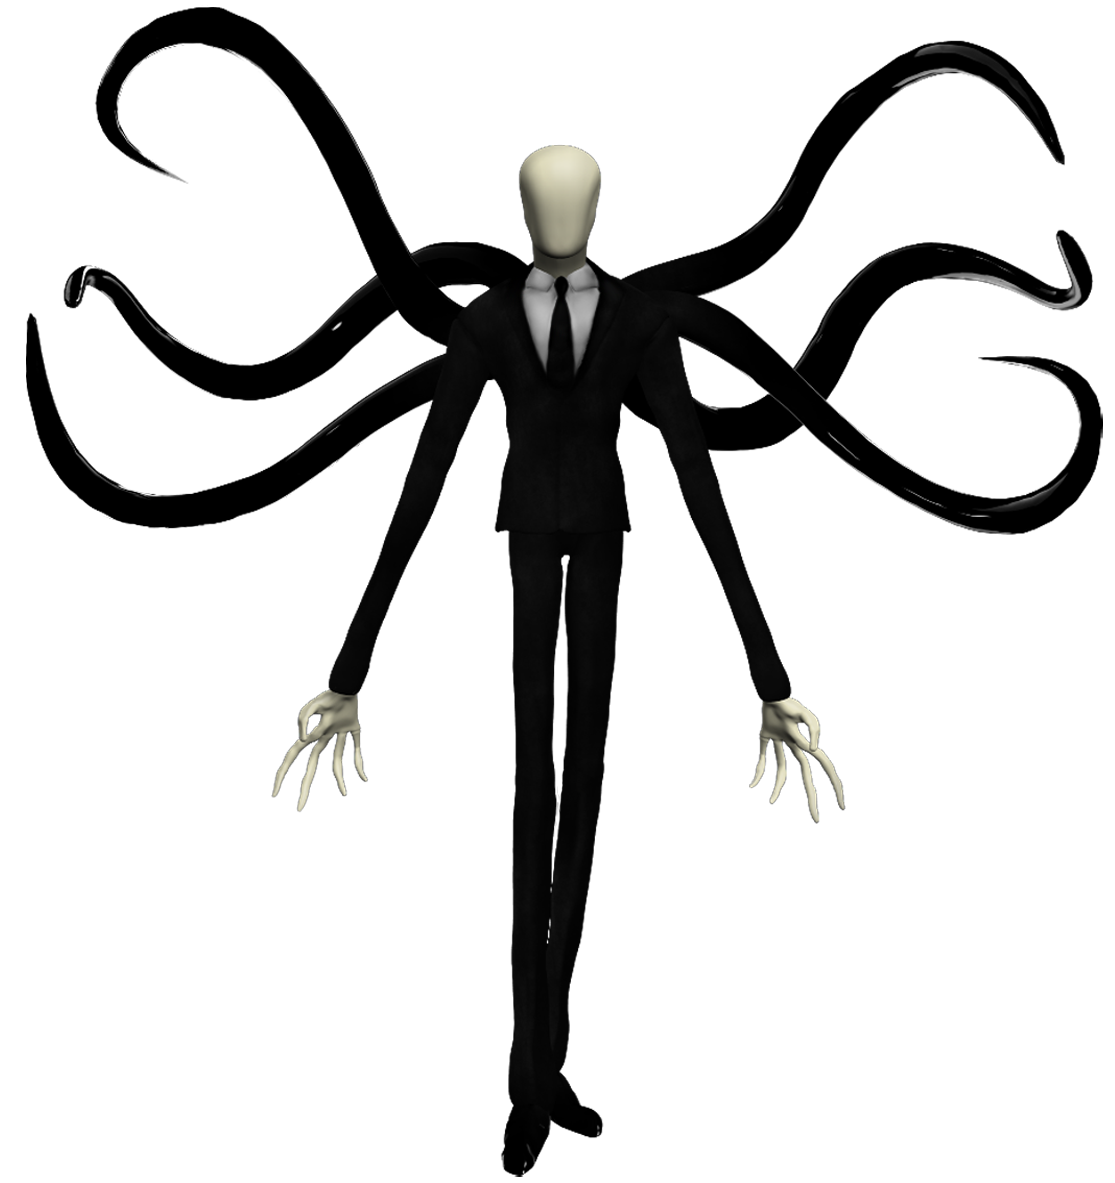 Halloween characters black and white clipart banner library download Slender Man | Fiction Wiki | FANDOM powered by Wikia banner library download